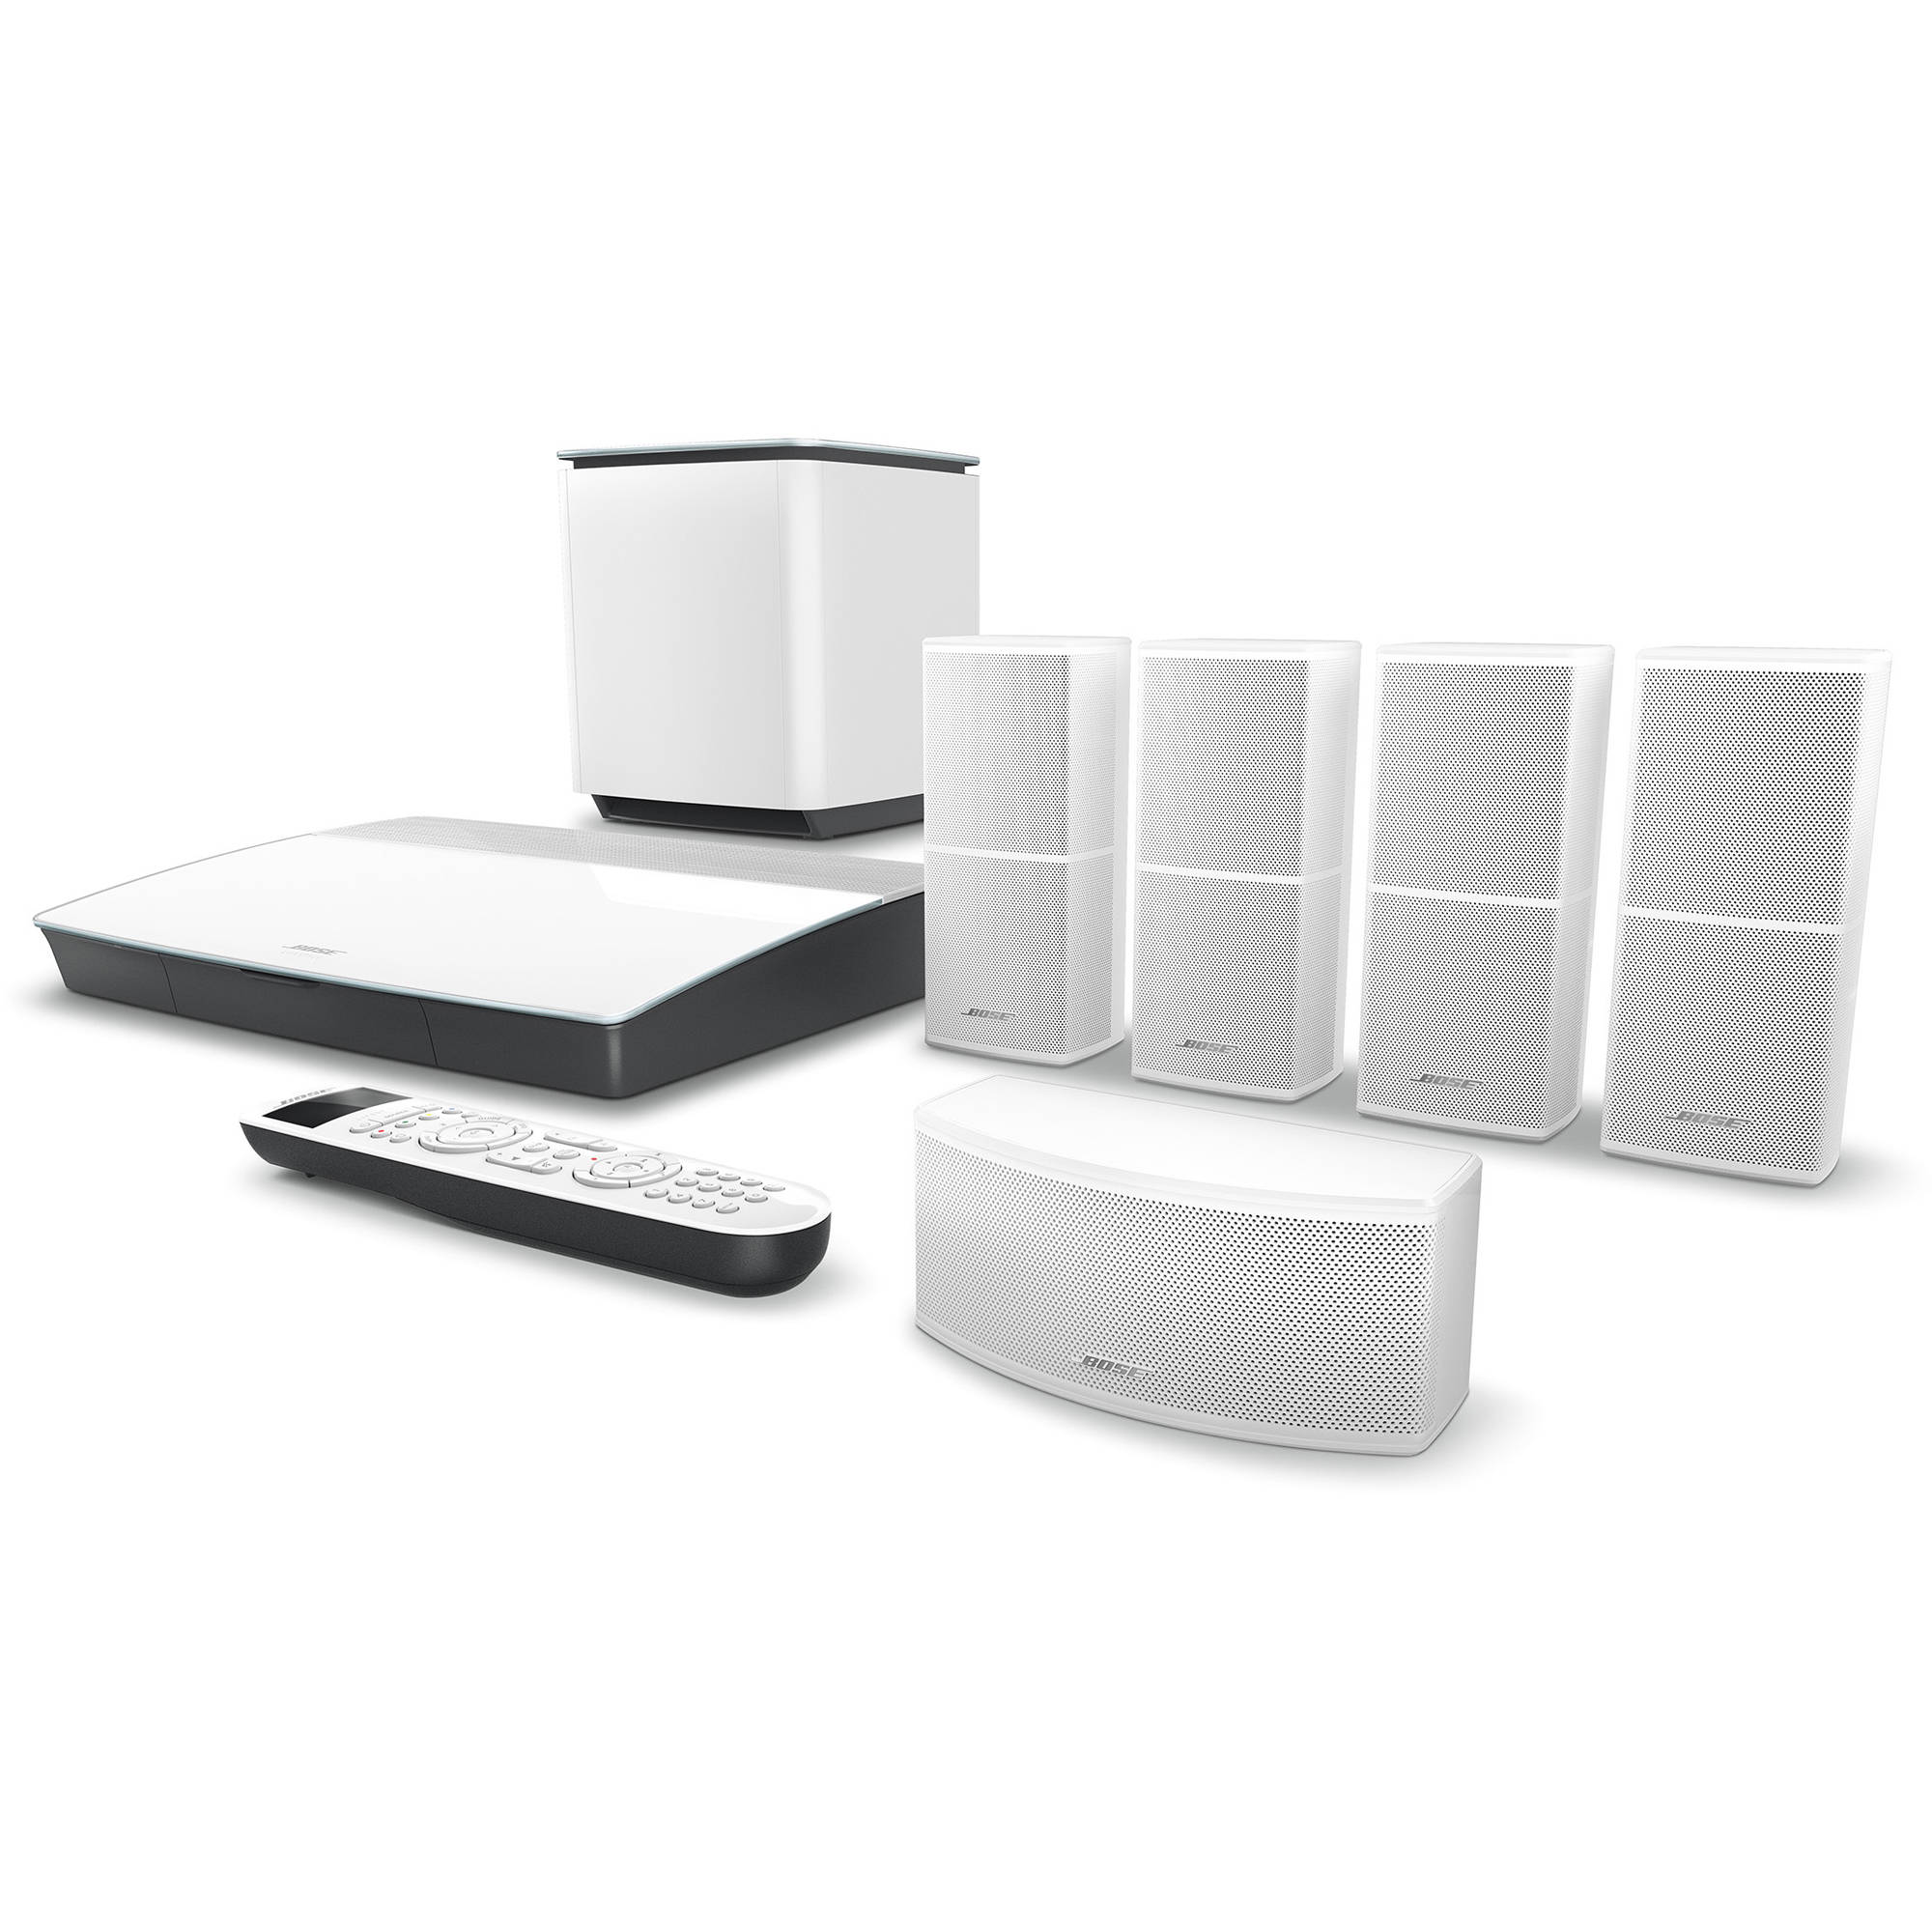 bose lifestyle 600 home theater system with jewel cube speakers (white)  home theater wiring bose jewel #10